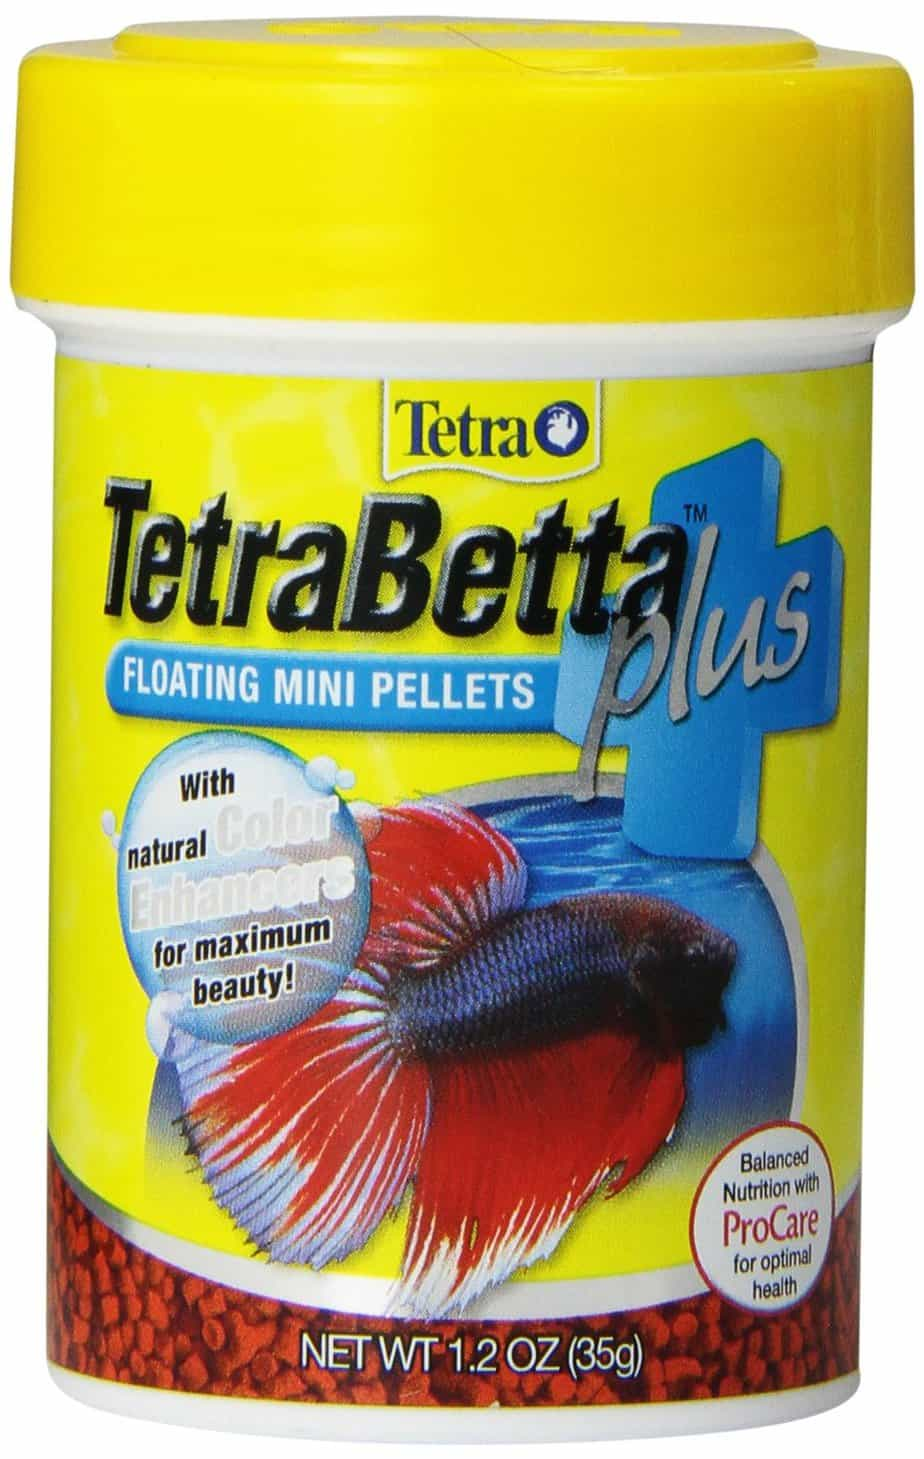 Complete betta fish care guide fish keeping advice for Weekend fish feeder